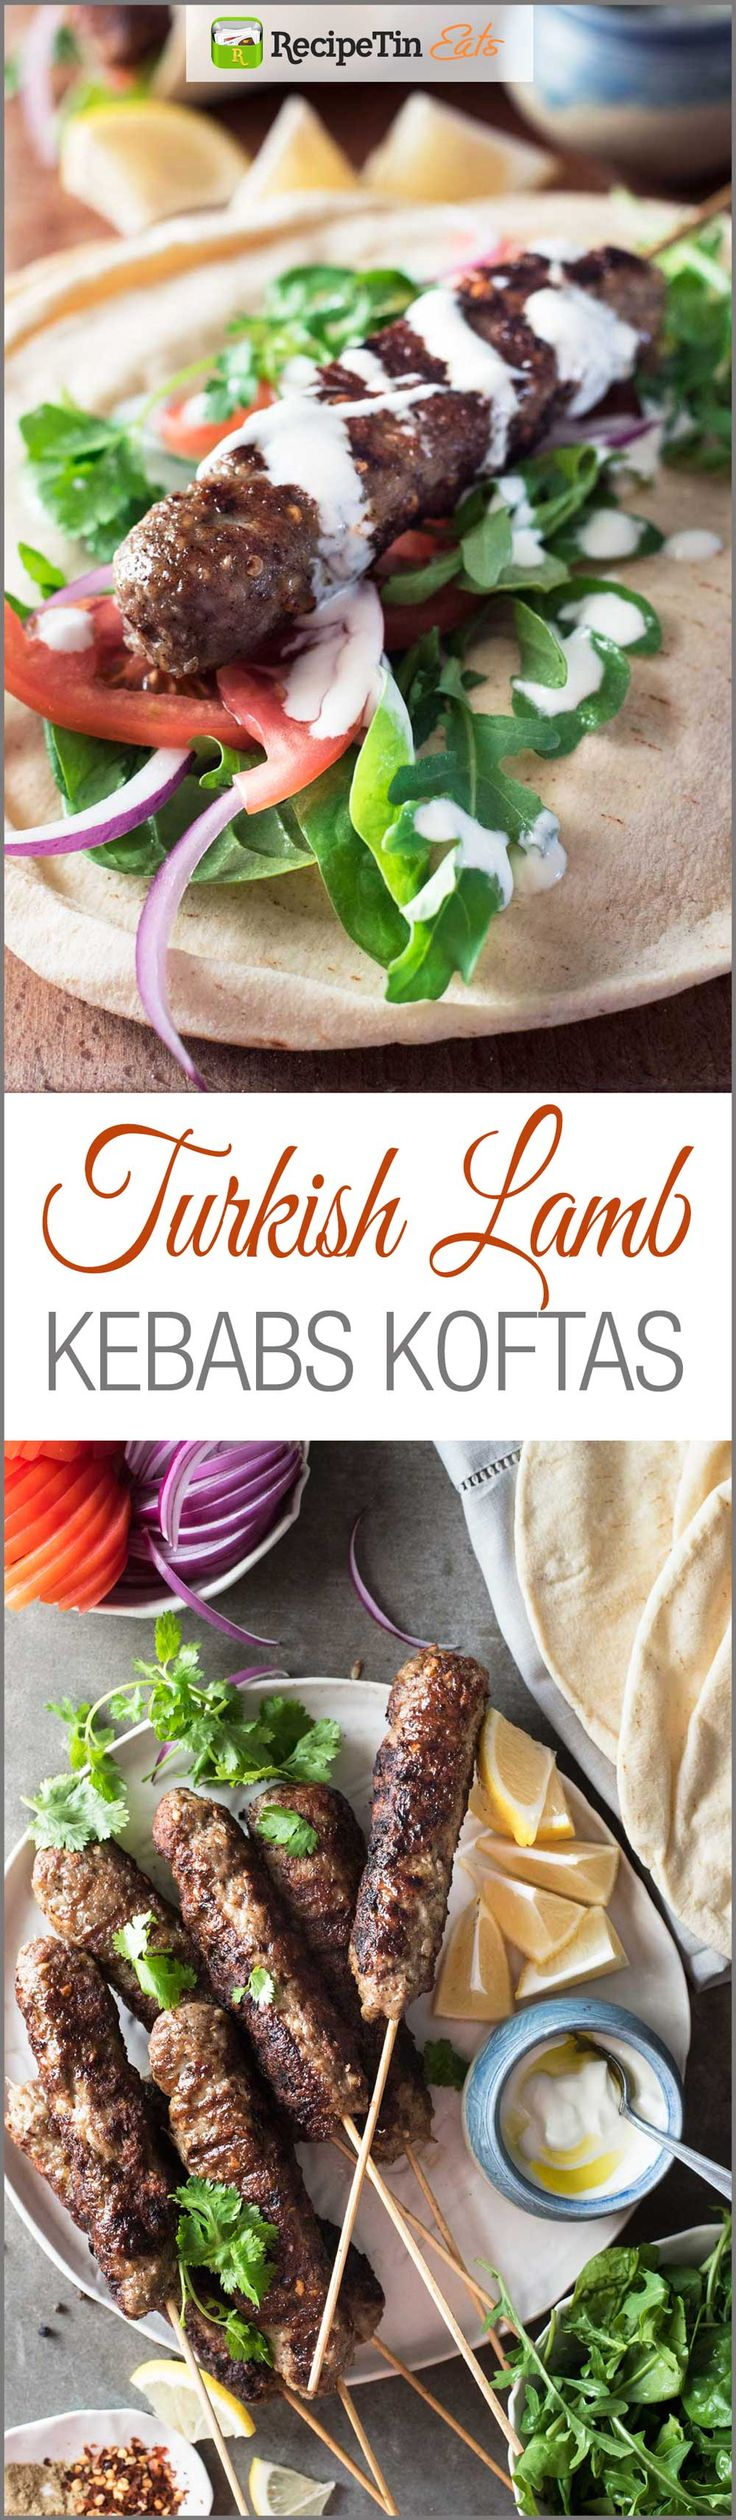 Turkish Lamb Kebab Koftas - Simple to make, exotic and fragrant, 30 minutes from start to finish!